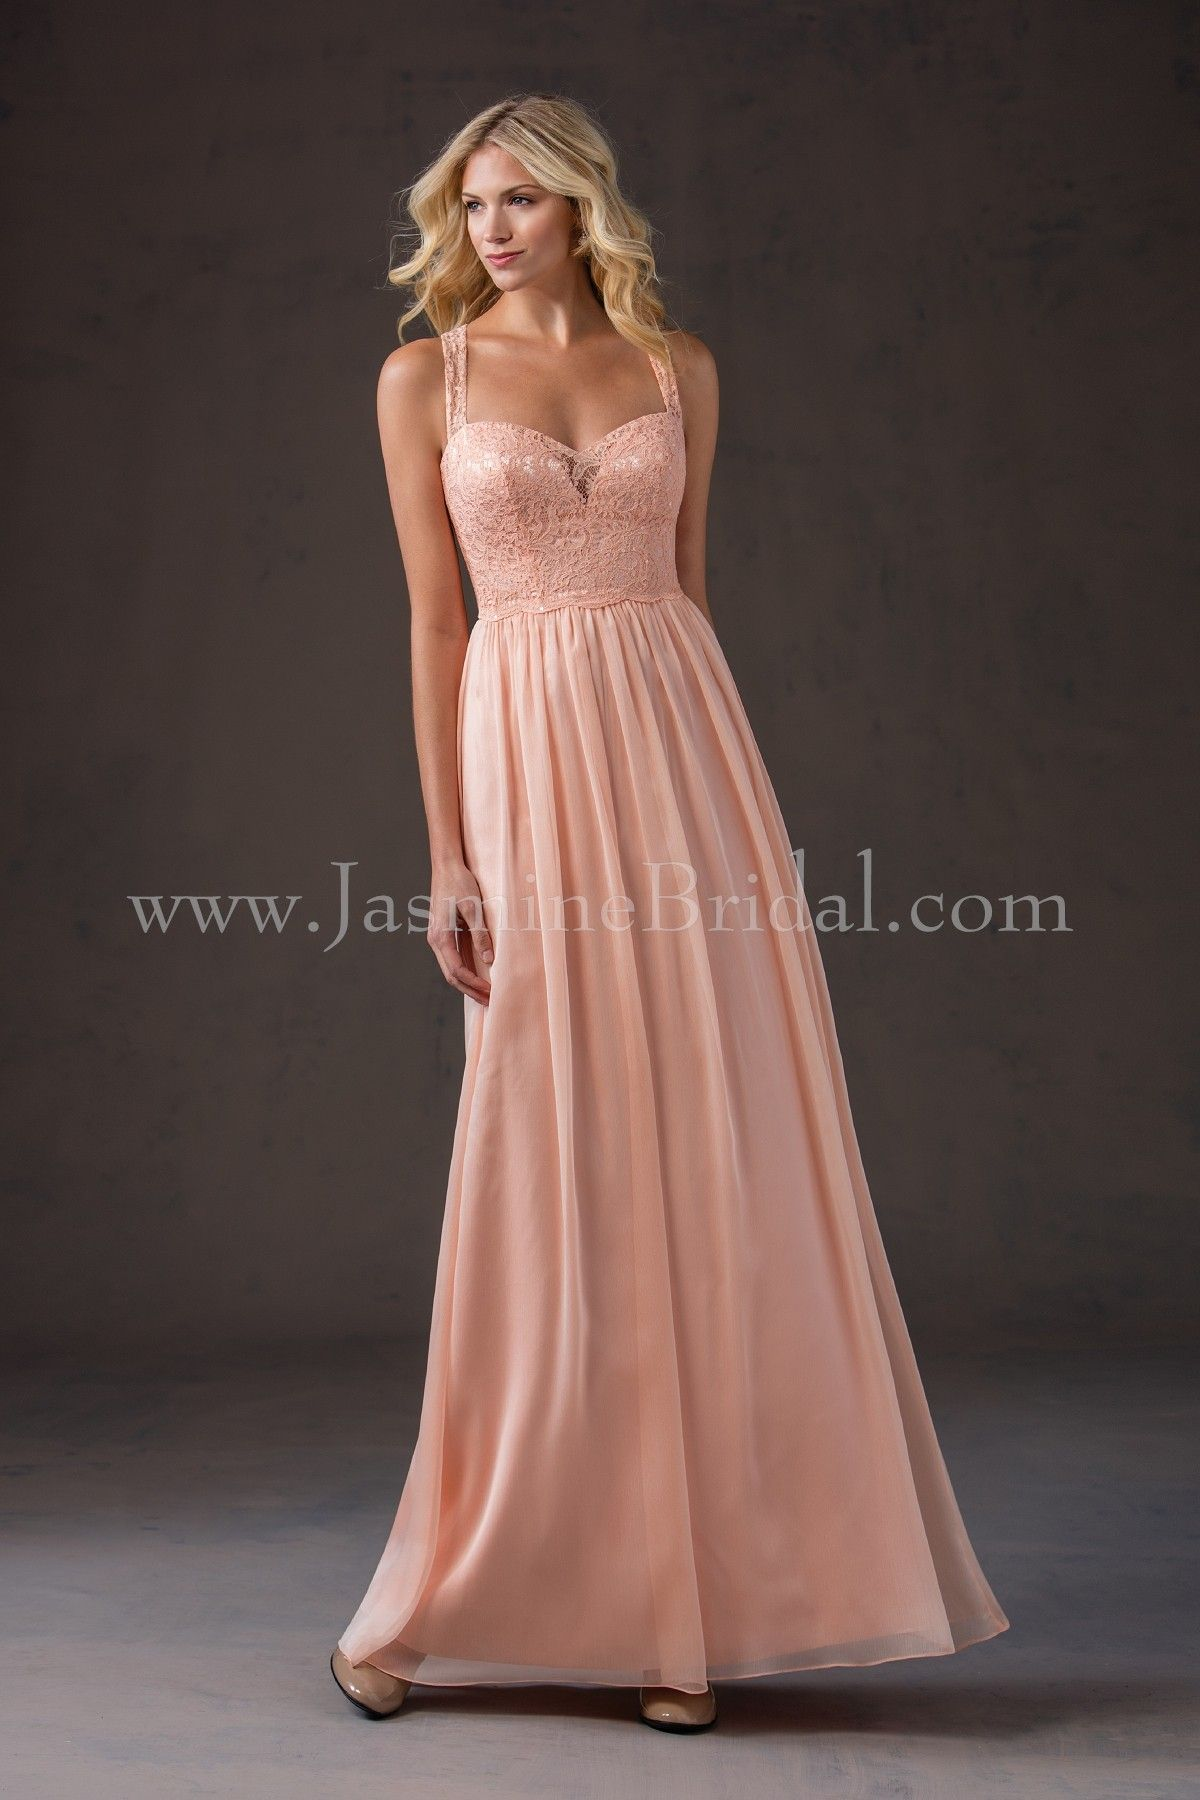 Jasmine bridal bridesmaid dress belsoie style l184061 in dreamsicle jasmine bridal bridesmaid dress belsoie style l184061 in dreamsicle ombrellifo Images